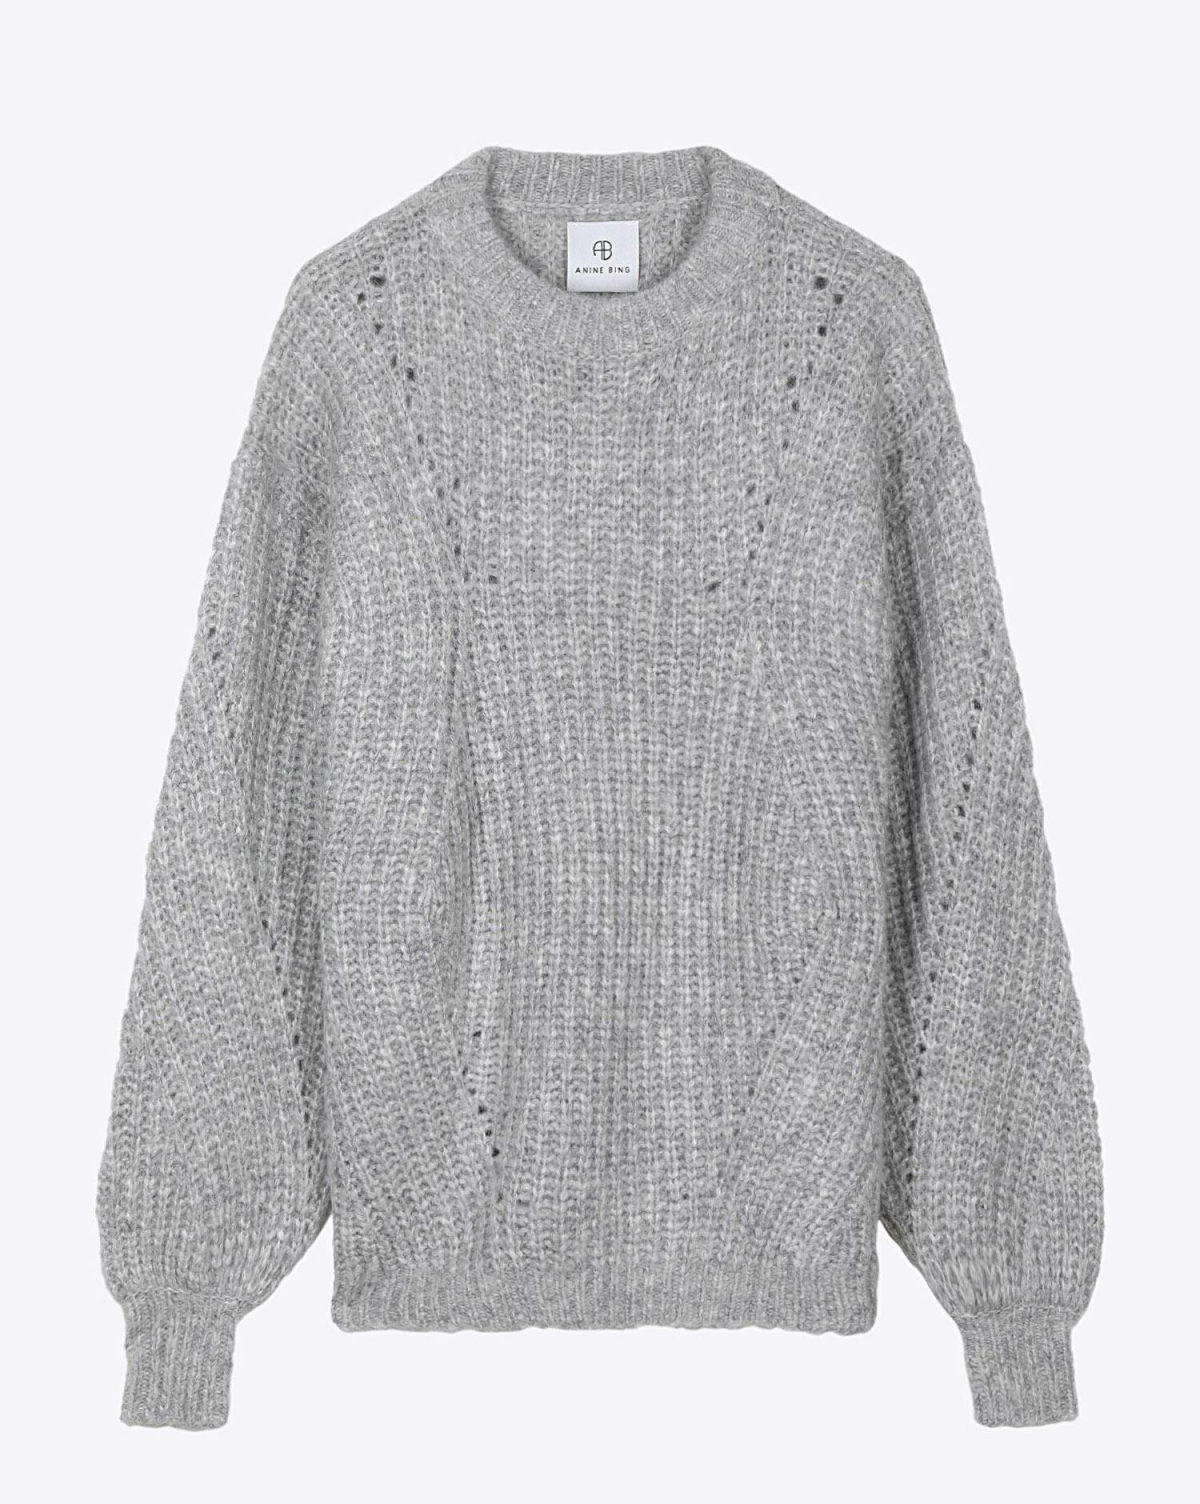 Anine Bing Jolie Sweater - Heather Grey